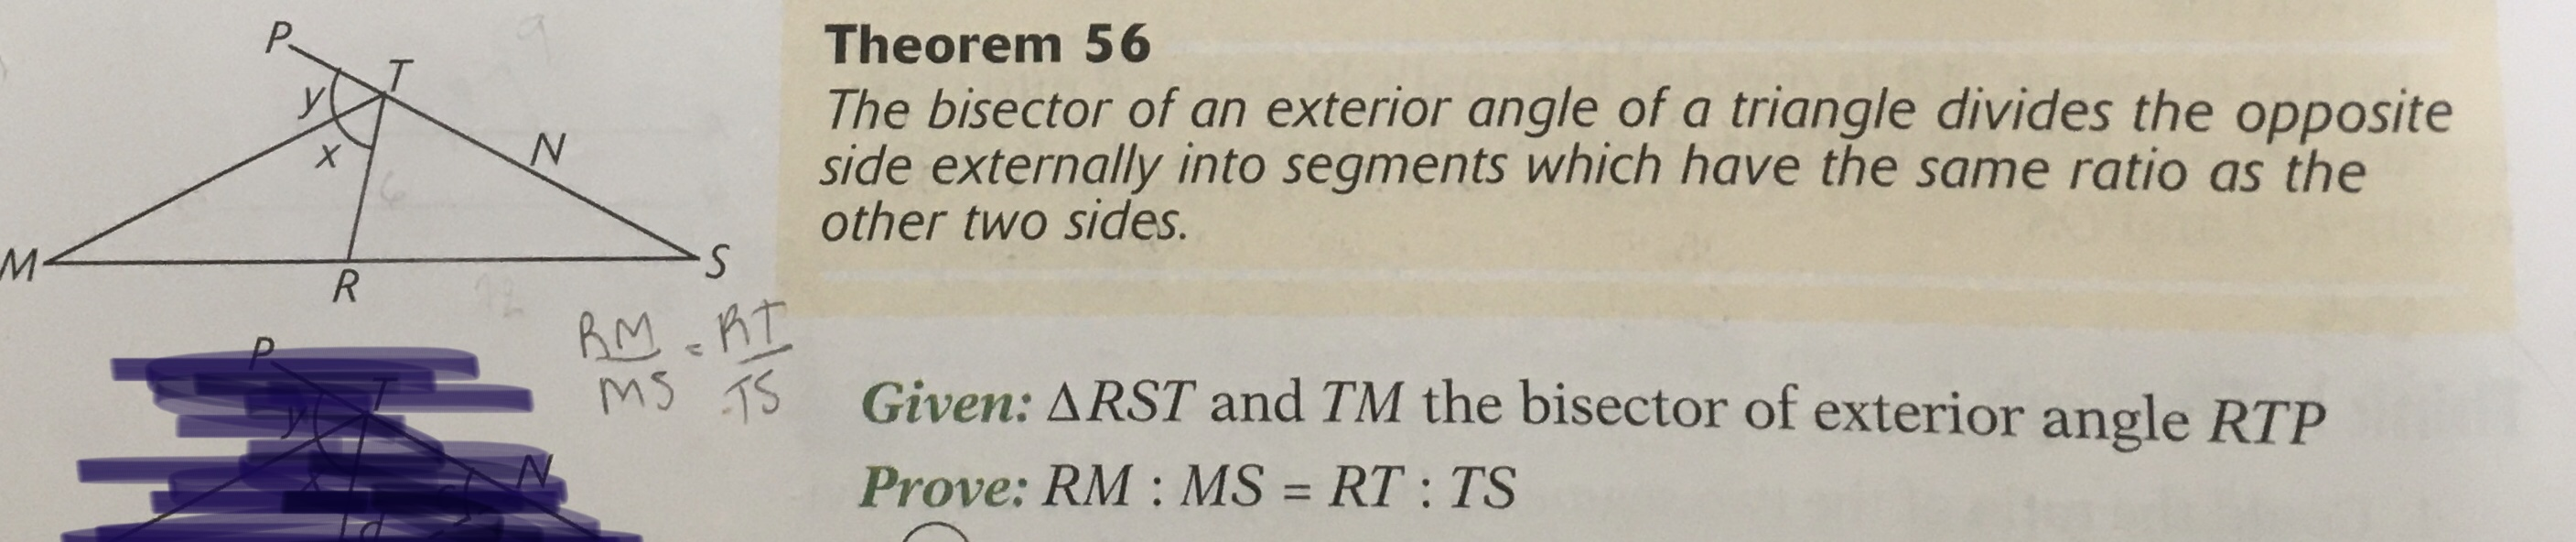 Theorem 56 The bisector of an exterior angle of a triangle divides the opposite side externally into segments which have the same ratio as the other two sides. M· S. RM cRI Ms TS Given: ARST and TM the bisector of exterior angle RTP Prove: RM : MS = RT : TS %3D